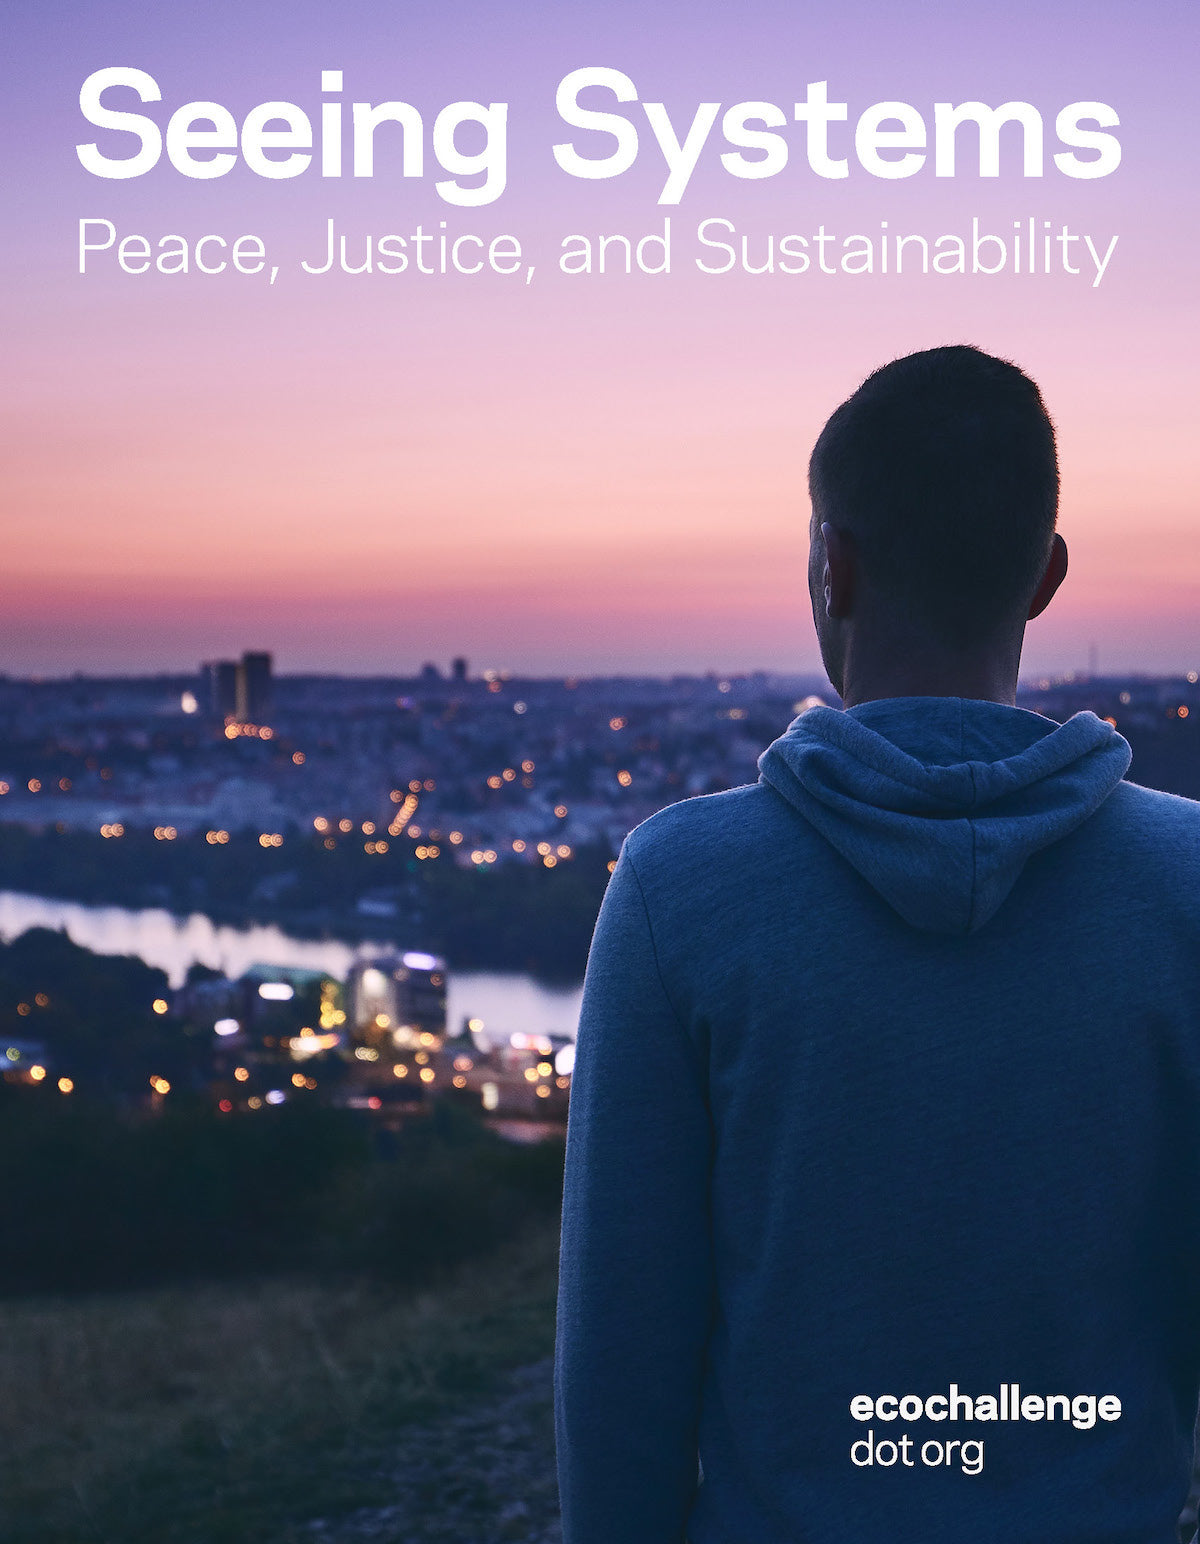 Seeing Systems: Peace, Justice, and Sustainability